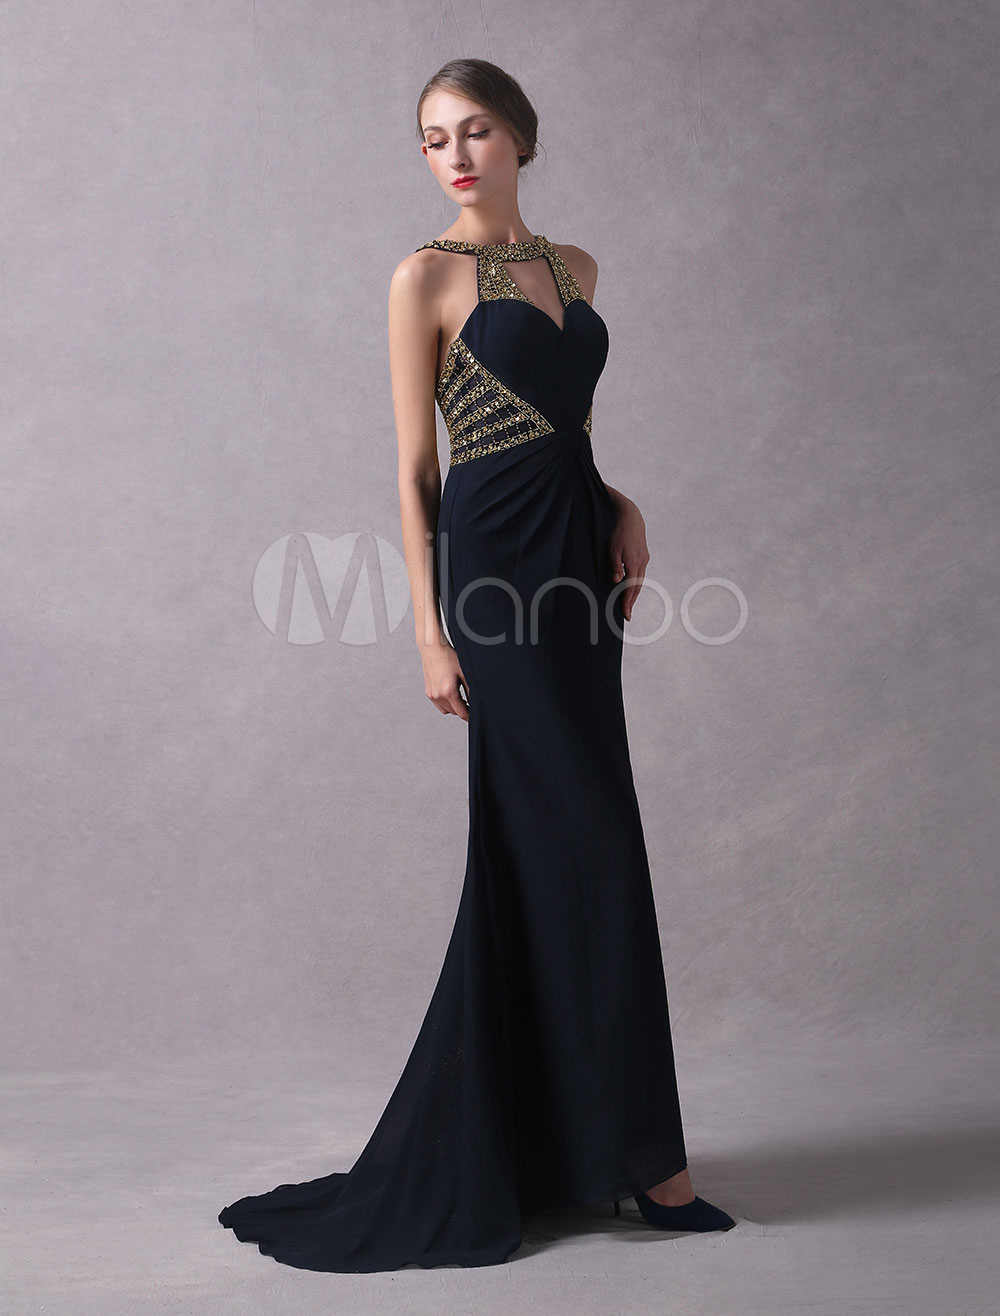 Evening Dresses Dark Navy Backless Formal Dress Beading Cut Out Sleeveless Sheath Evening Gown With Train